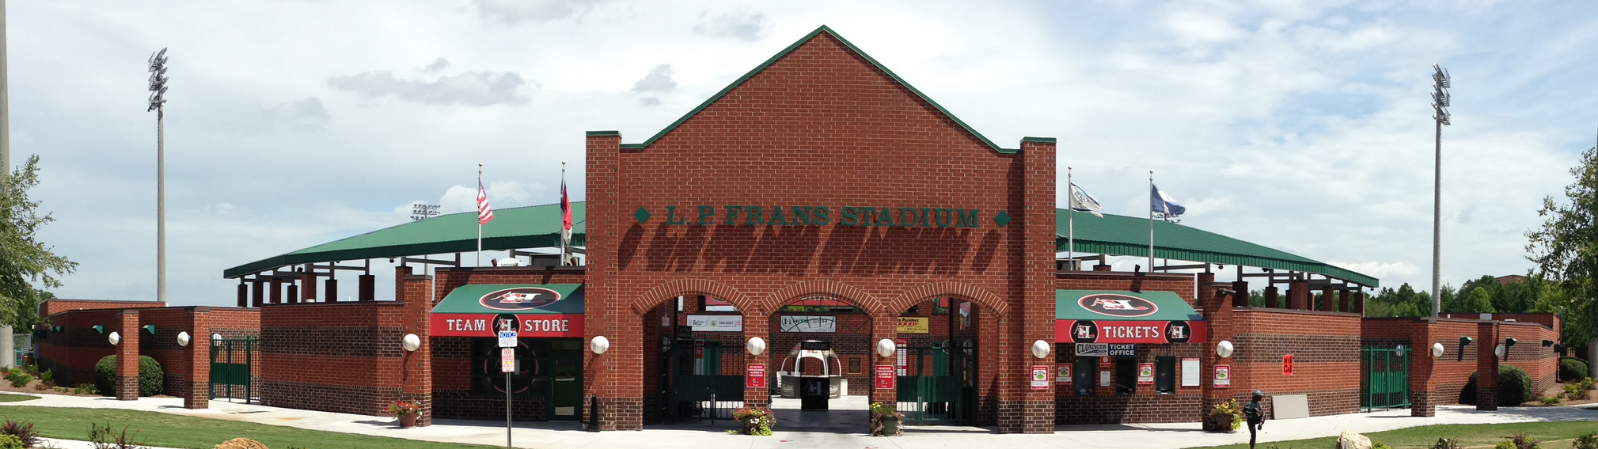 L.P. Frans Stadium, in Hickory NC